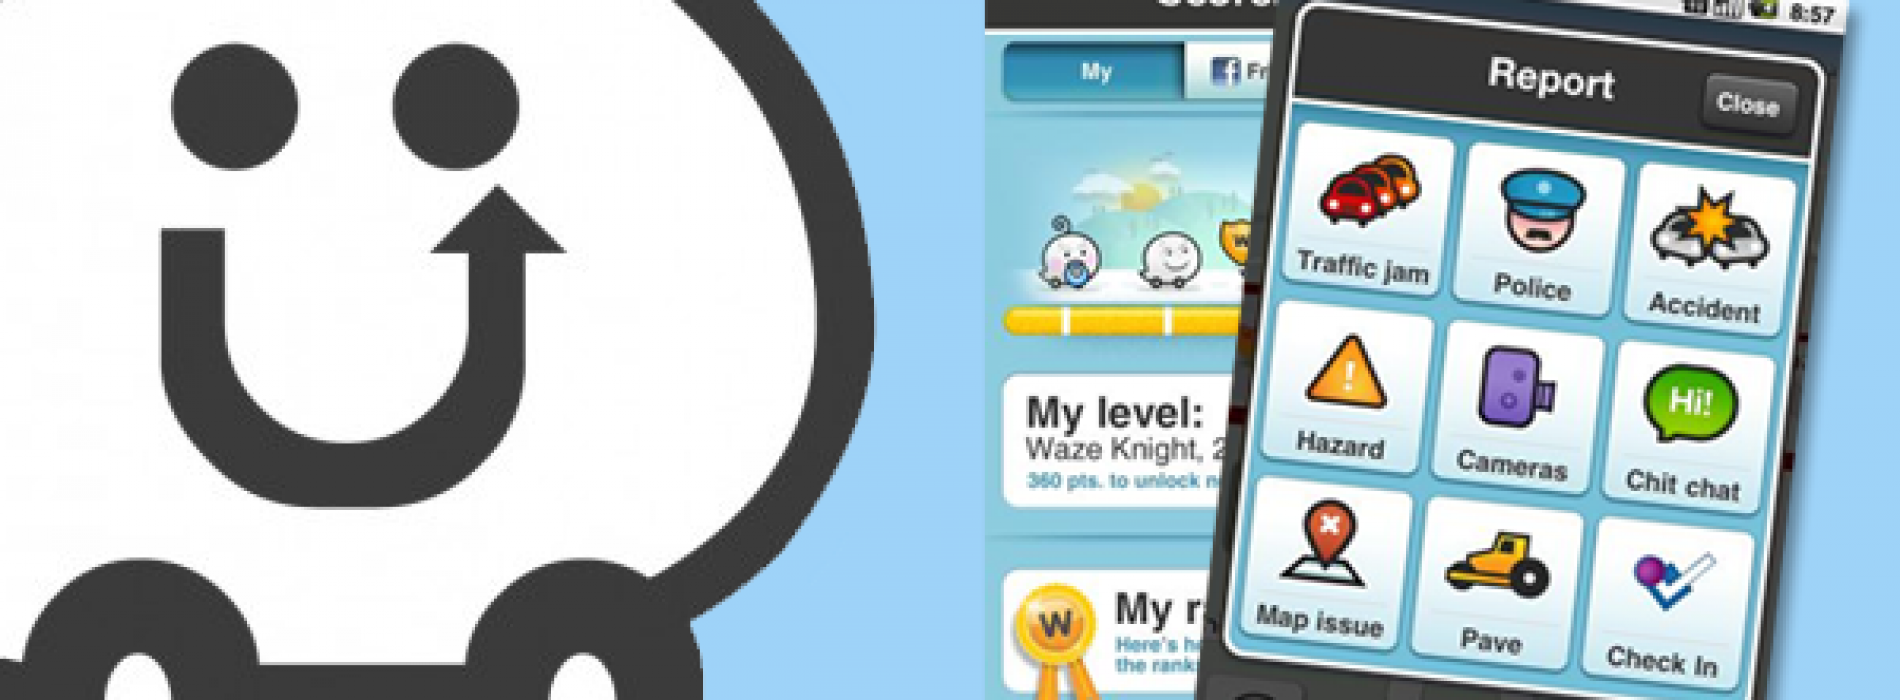 Waze 3.0 arrives with redesigned look, social integration